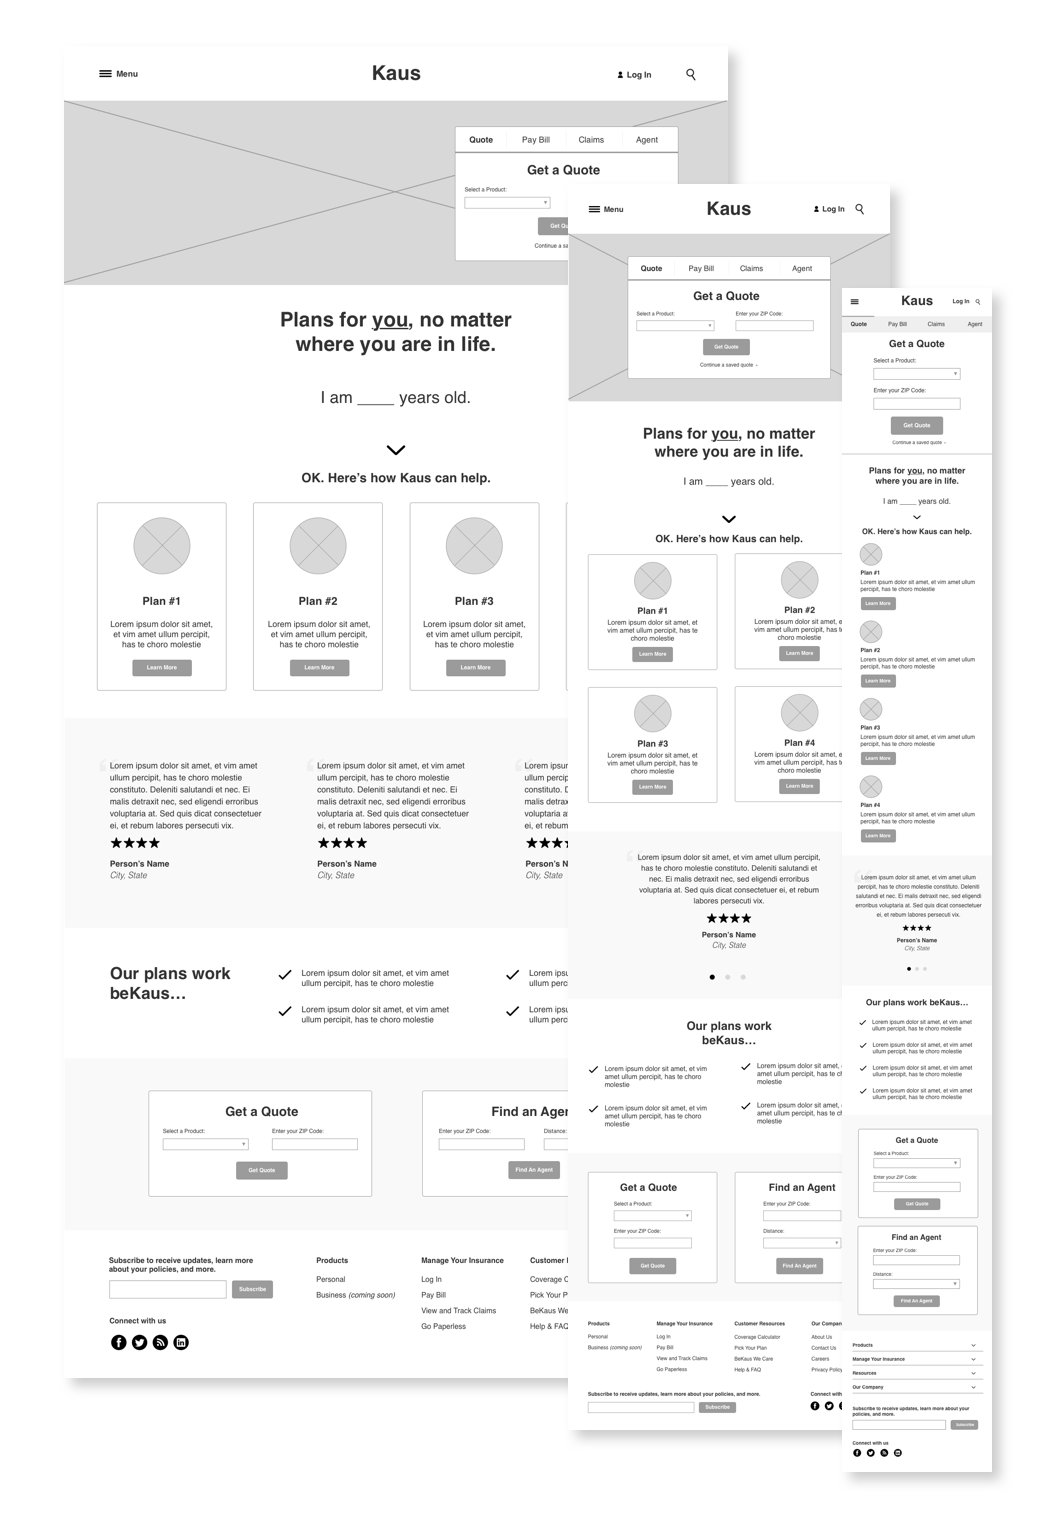 Preliminary Wireframes - During this step of the process, I wireframed the screens for Kaus' home page, product page, and quote form. These were then utilized for preliminary prototyping.I ultimately chose to prototype Kaus' auto insurance quote form on desktop after reviewing research findings. Since oftentimes this is the first interaction people have with an insurance company online, I wanted to ensure it was seamless before going to production.